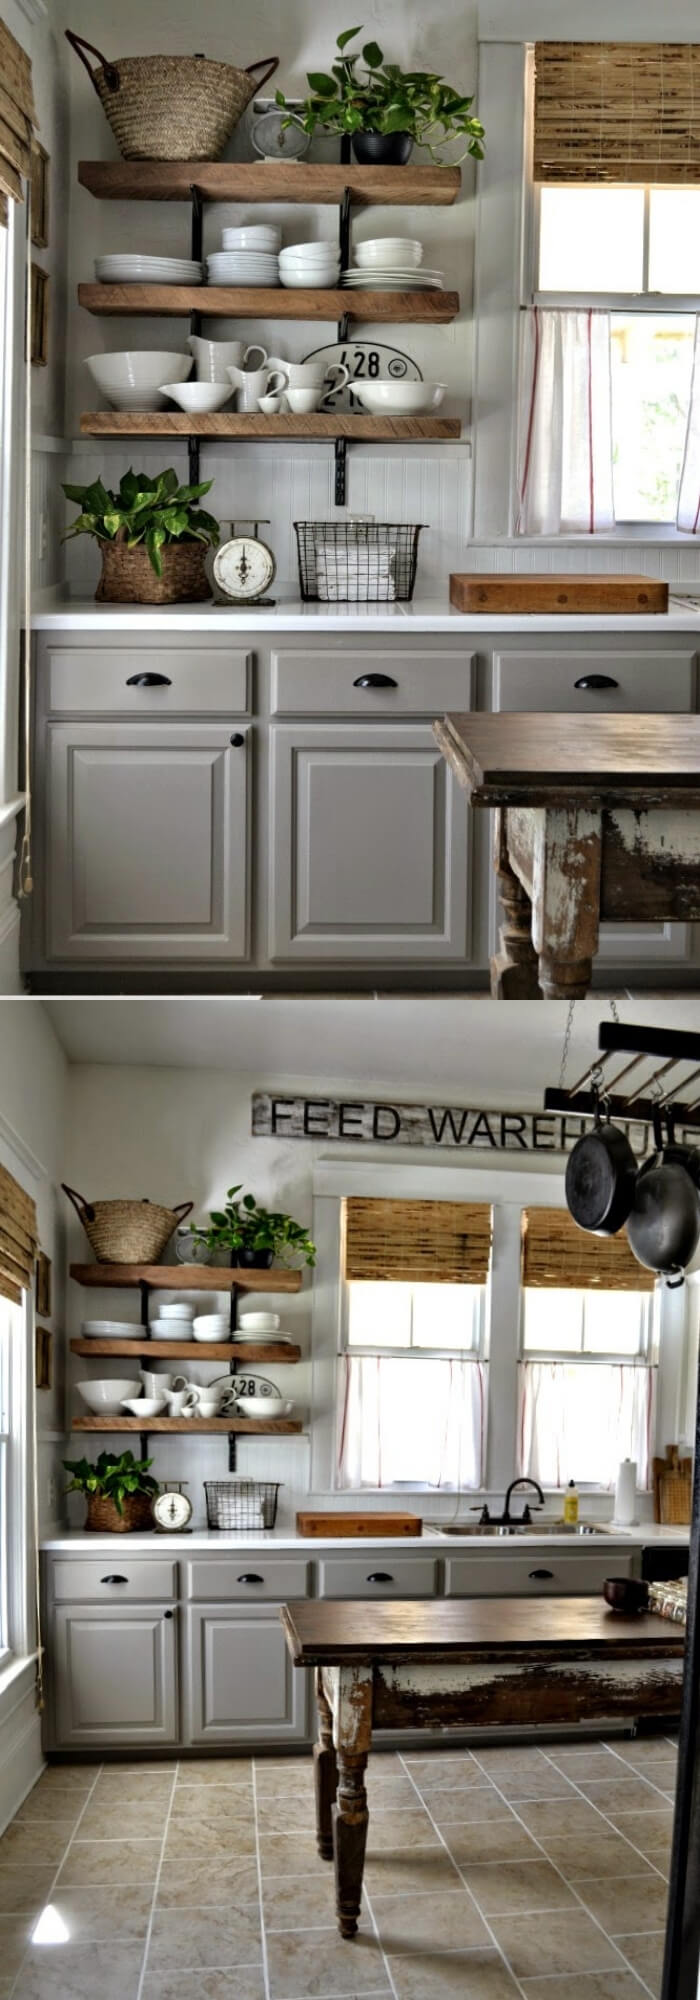 Open shelves | Inspiring Farmhouse Kitchen Design & Decor Ideas